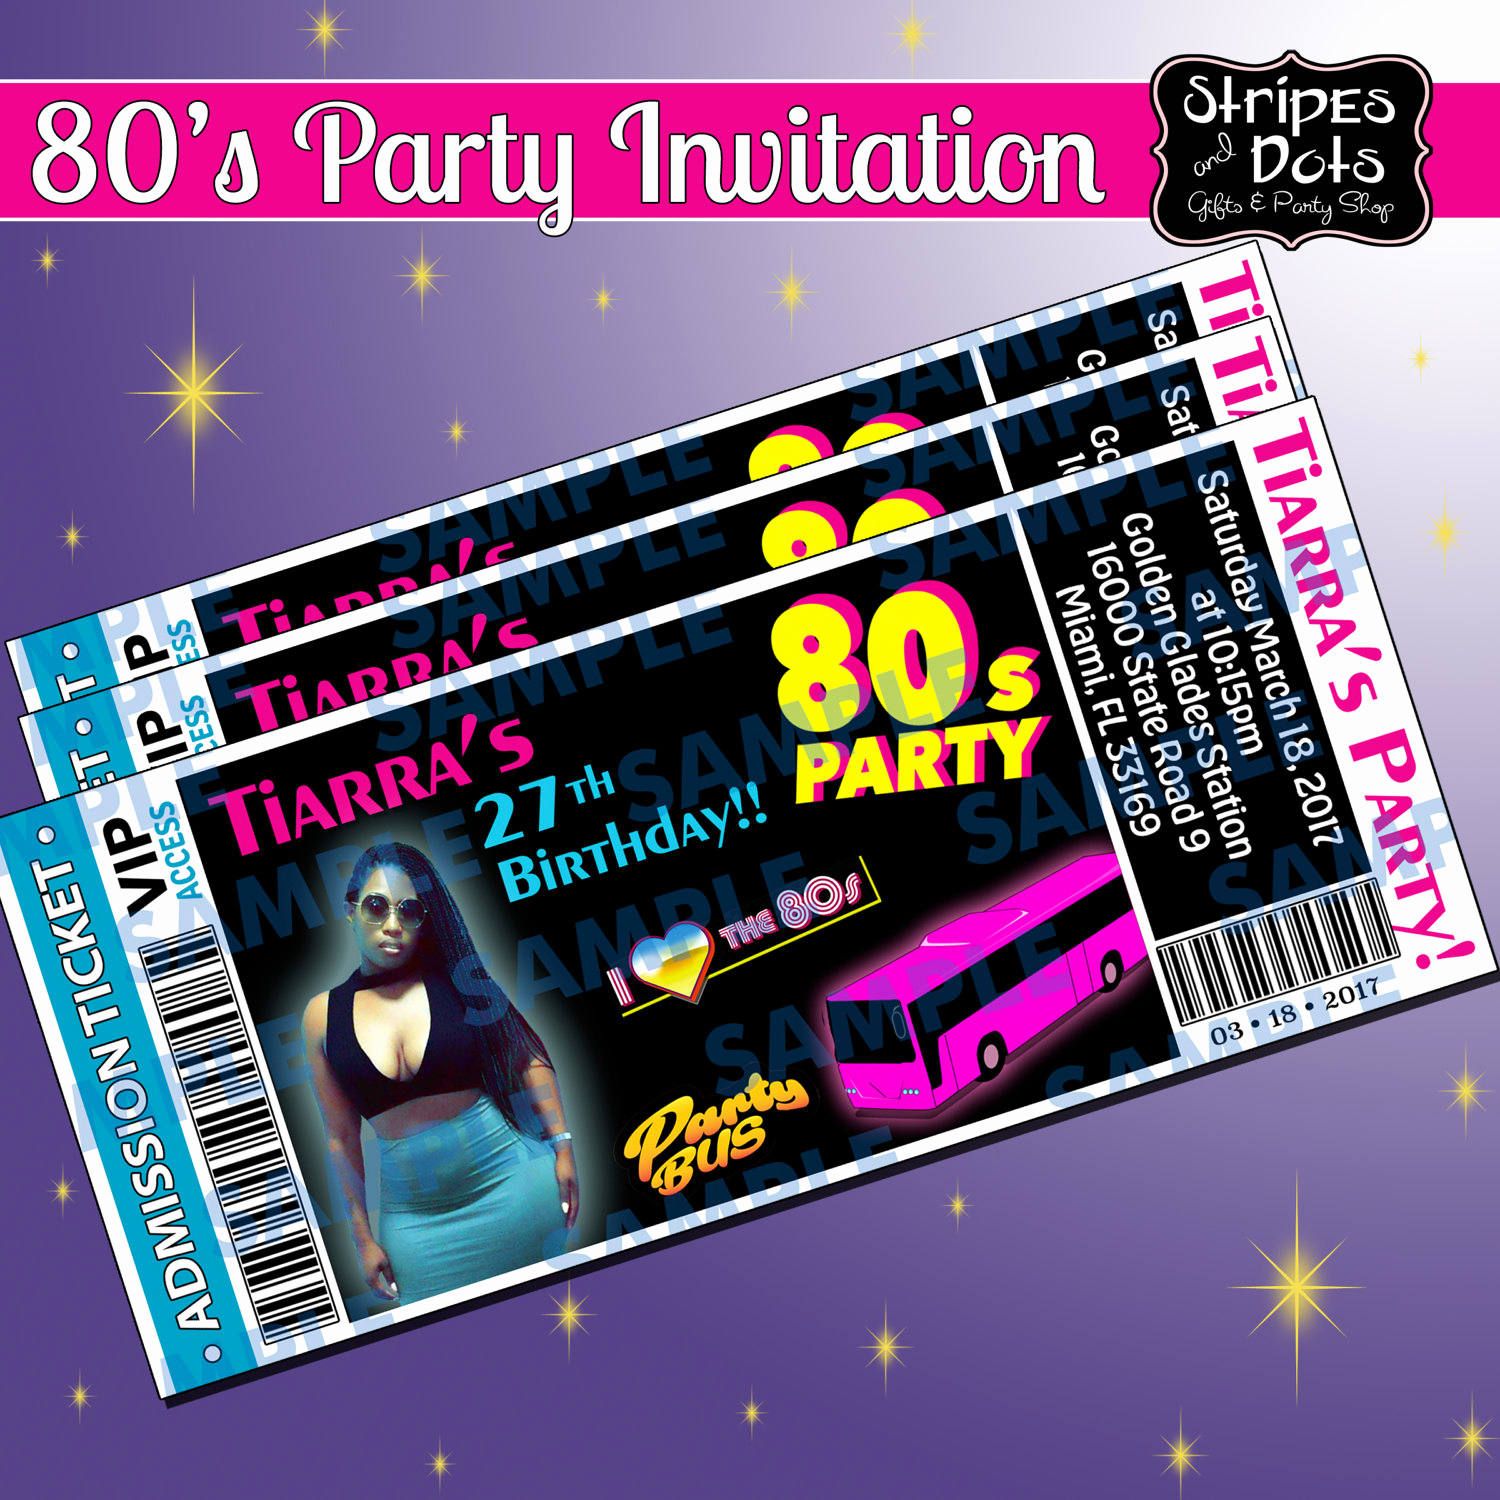 Party Bus Invitation Wording Unique Ticket Invitations Party Bus Invitation 80 S